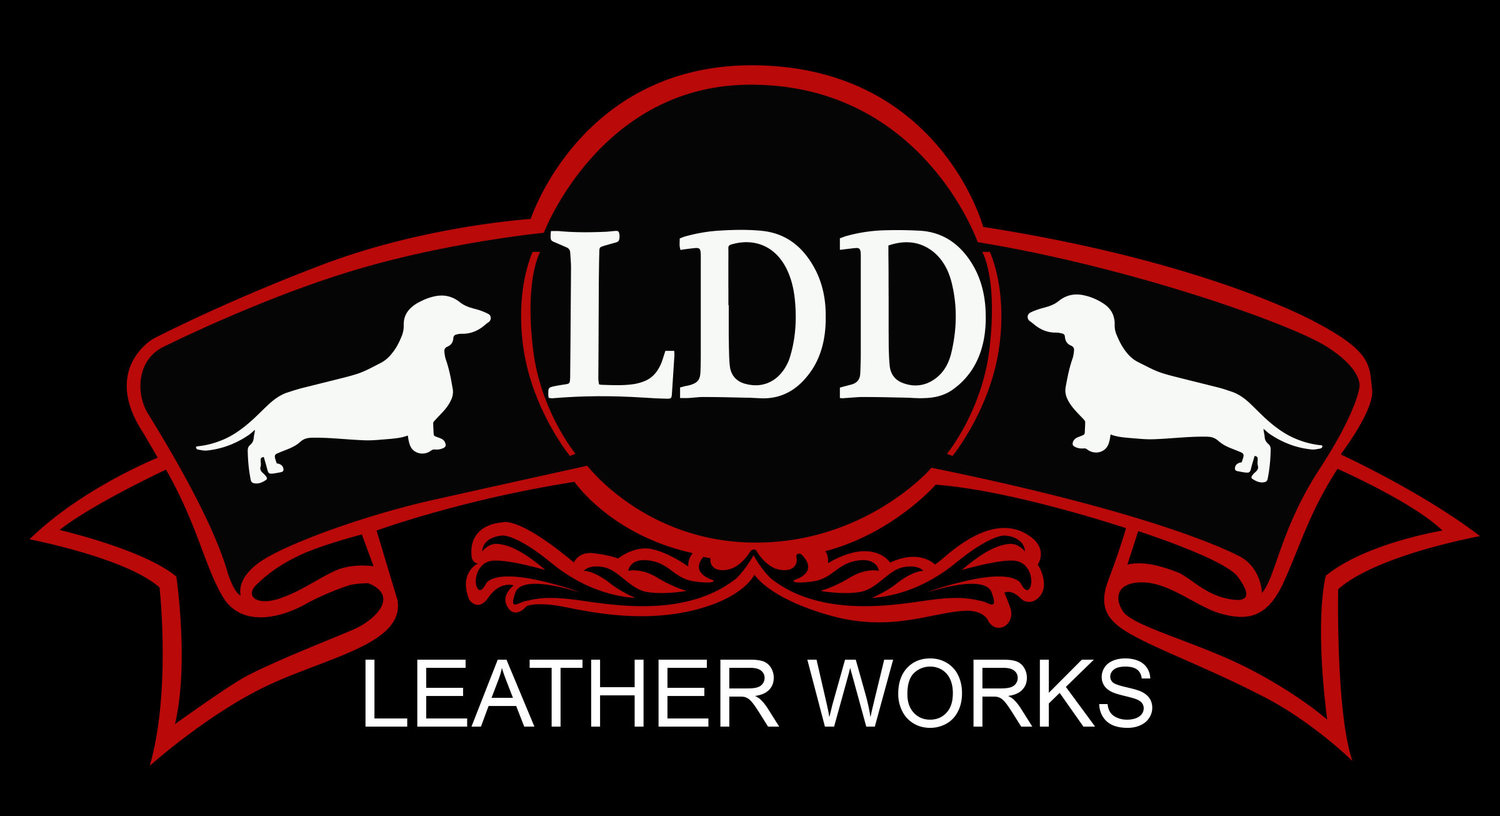 LDD Leather Works